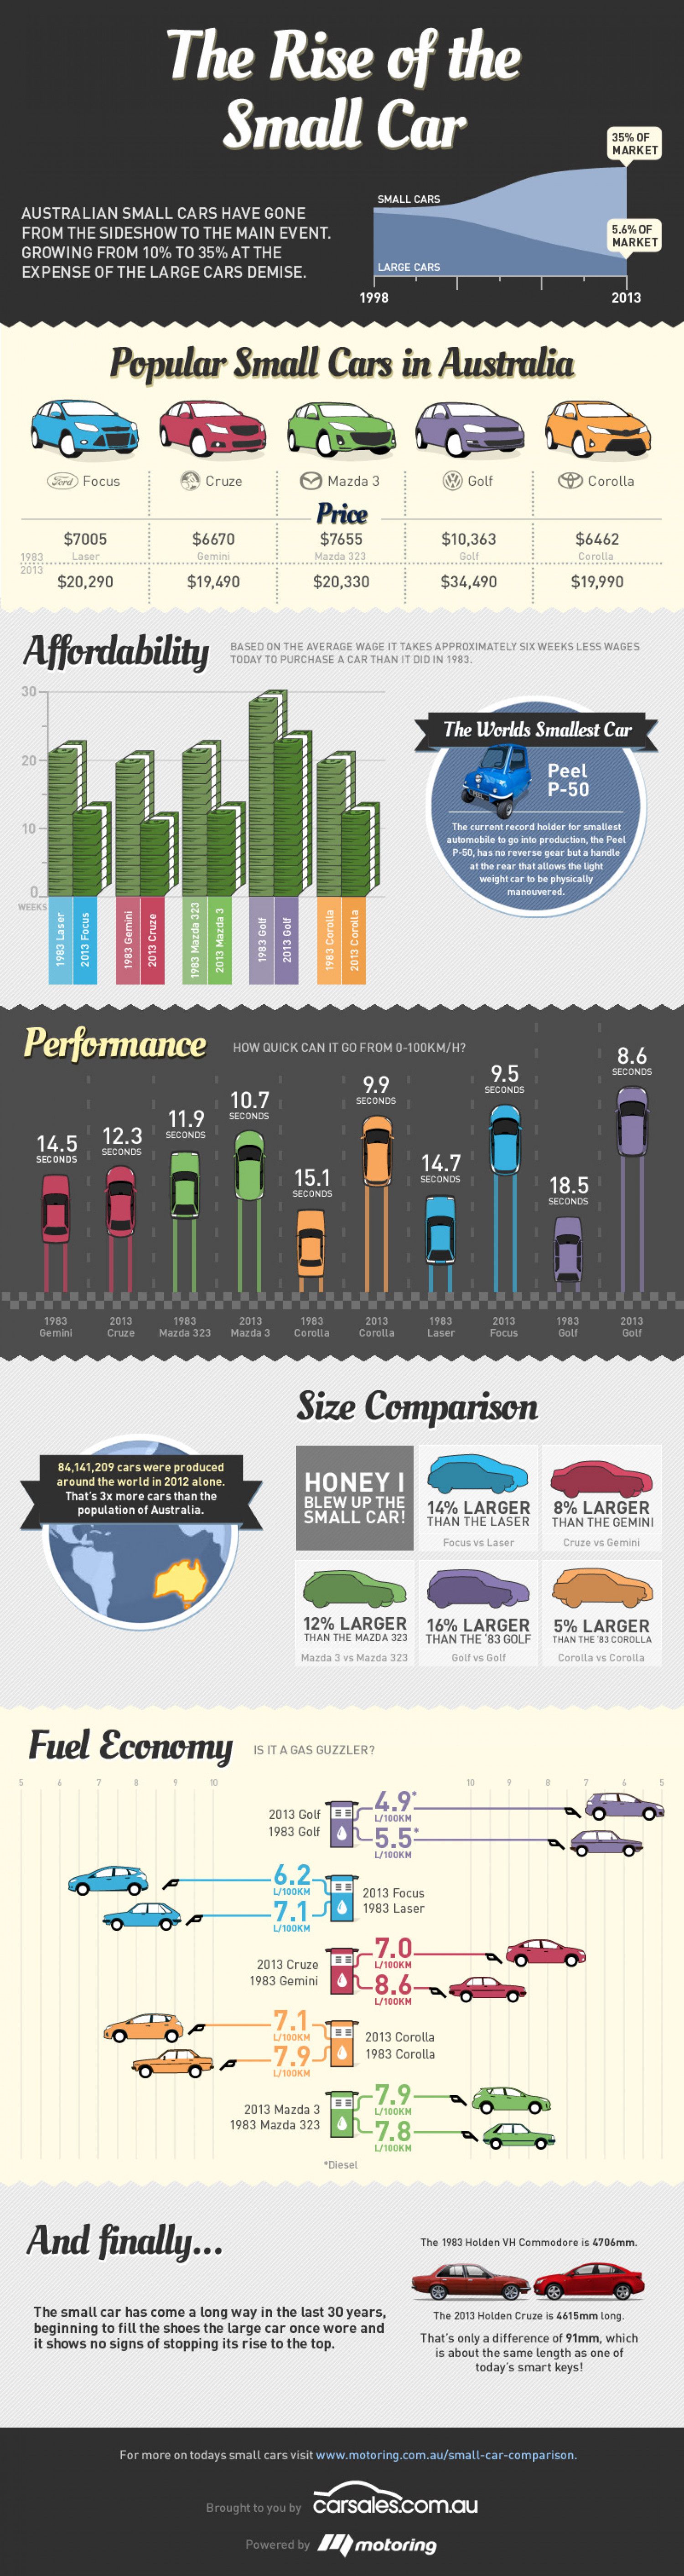 The Rise of the Small Car Infographic